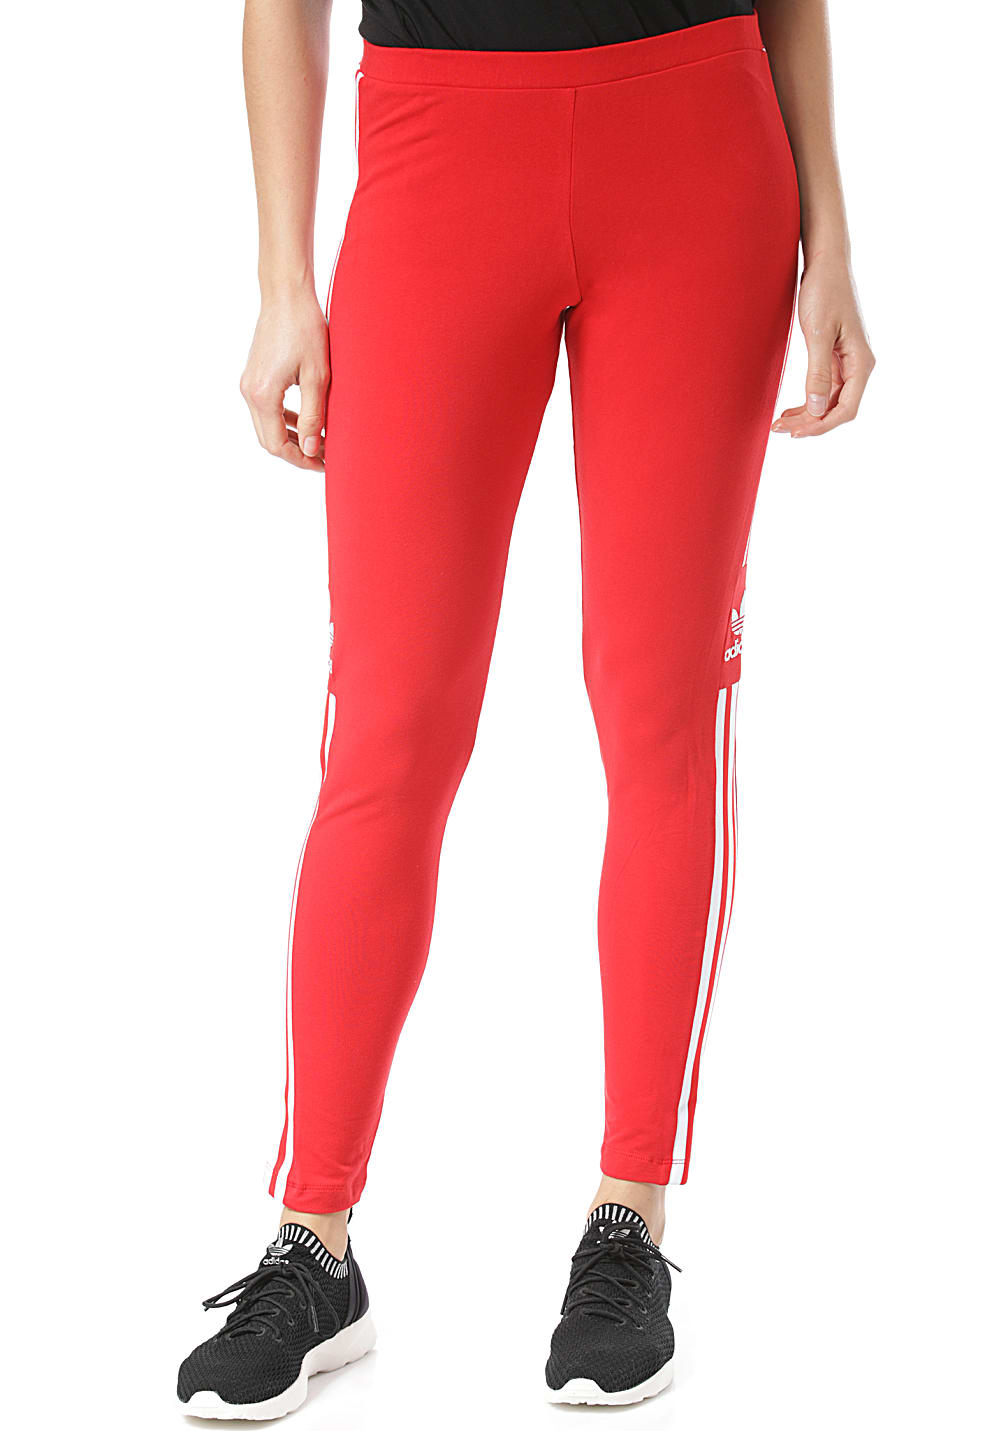 leggings adidas rouge